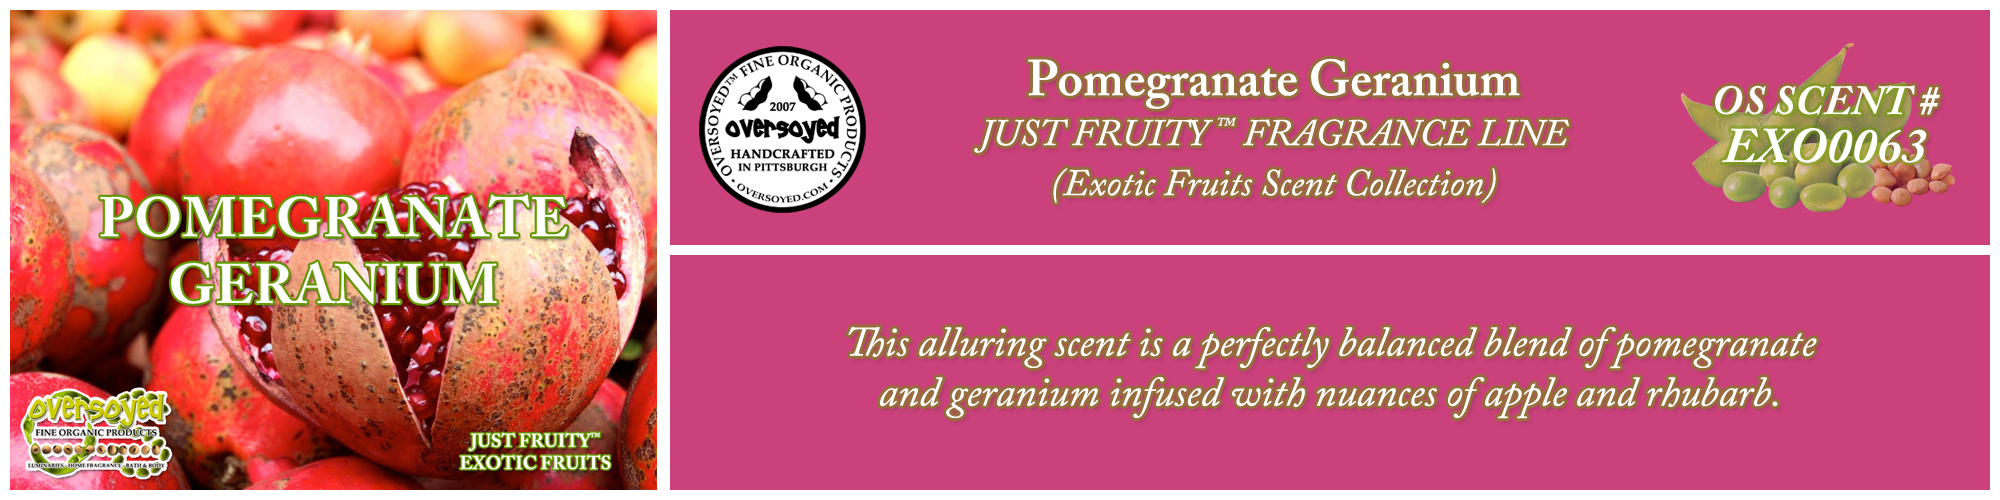 Pomegranate Geranium Handcrafted Products Collection